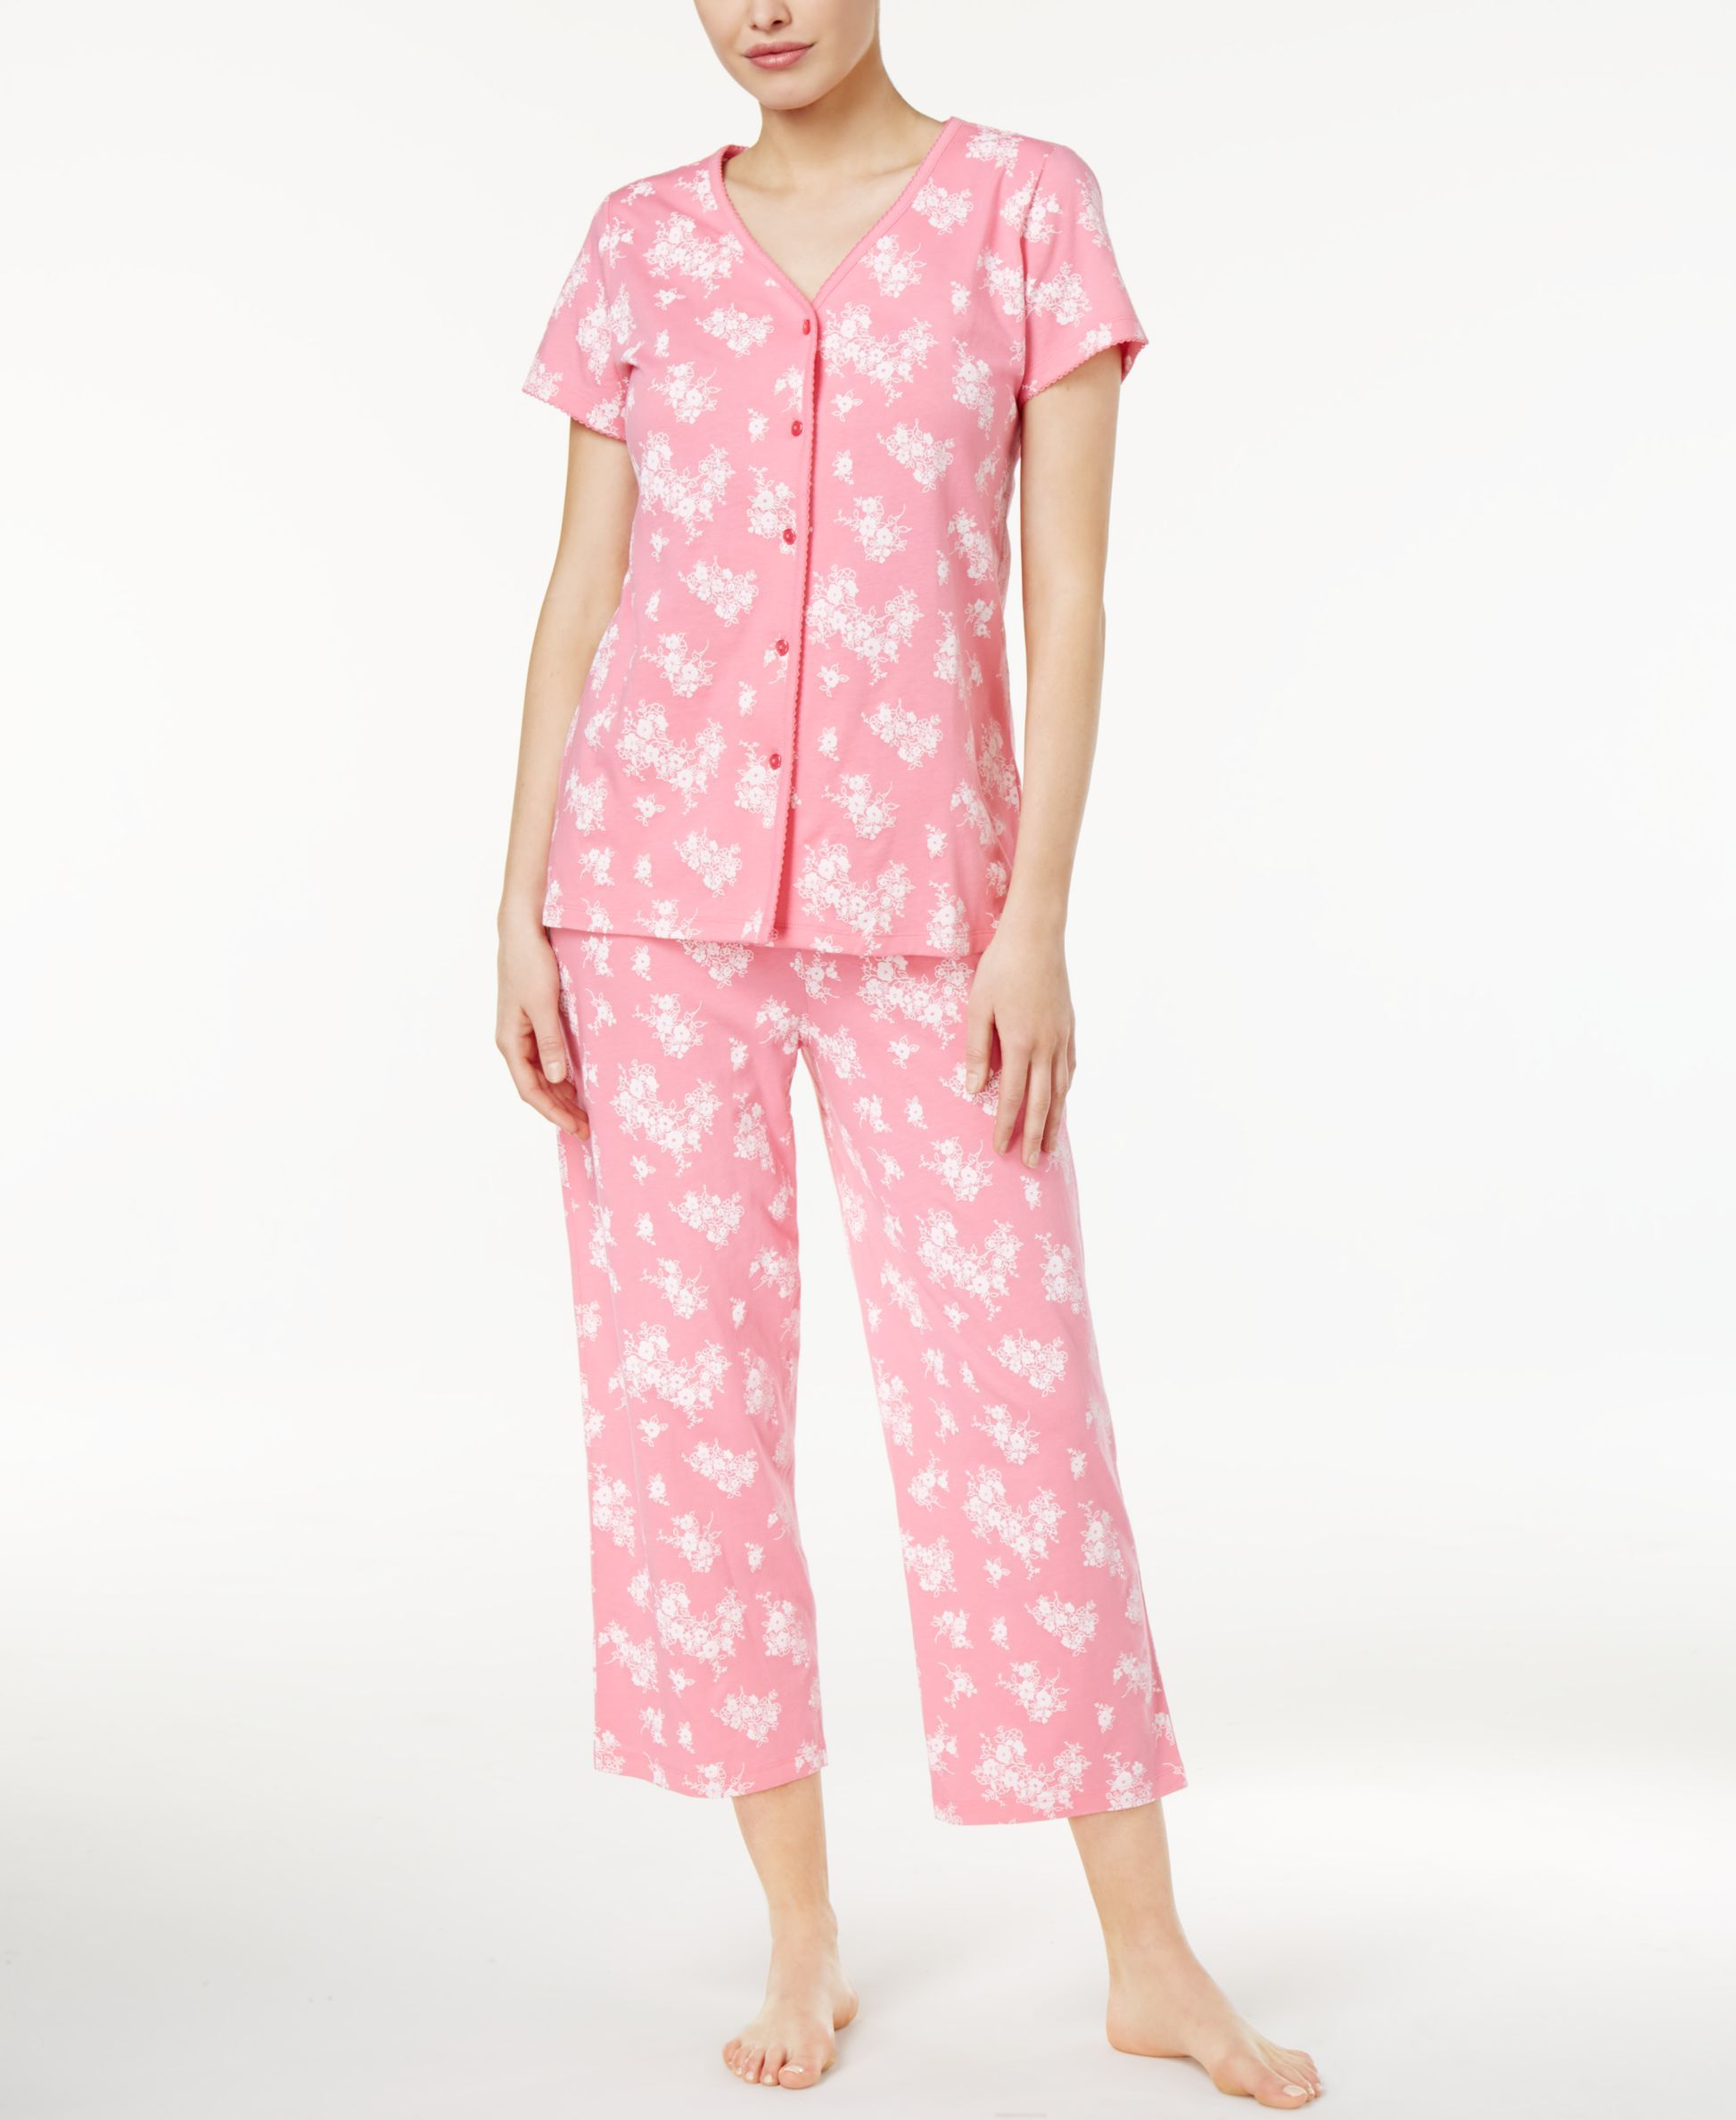 668df06bf349 Charter Club Cotton Floral-Print Pajama Set, Only at Macy's ...